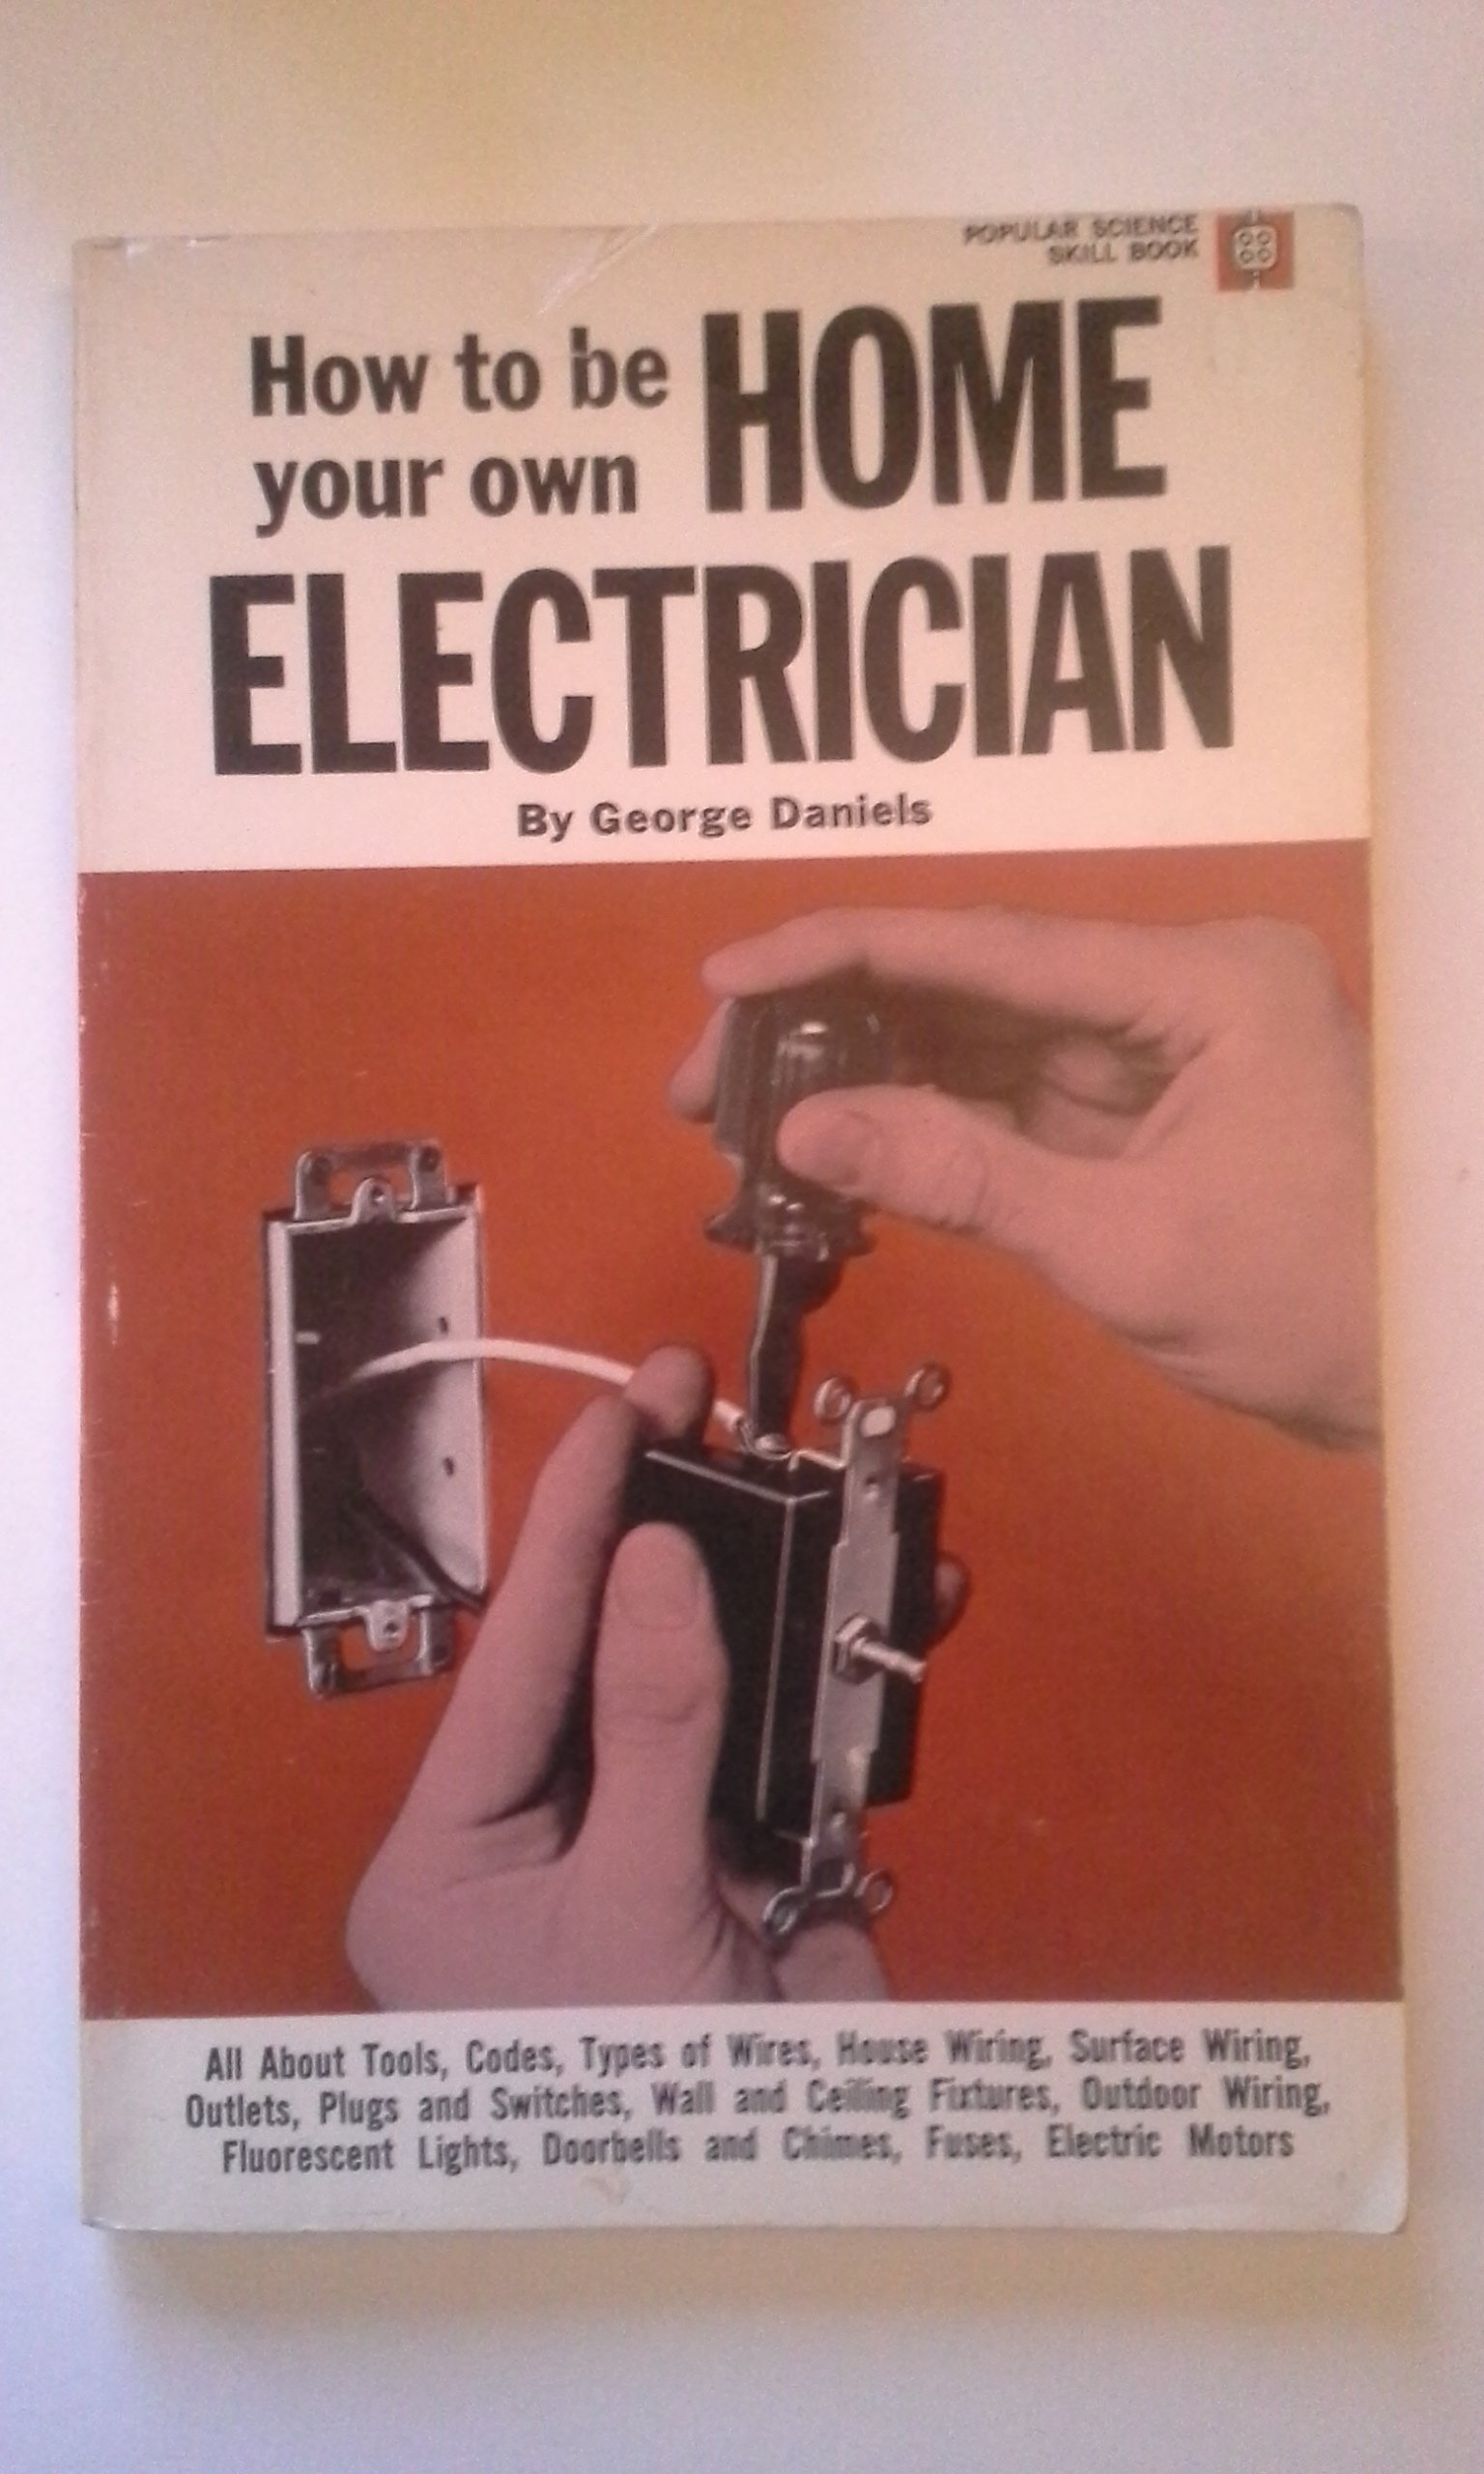 How To Be Your Own Home Electrician George Emery Daniels Amazon House Wiring Tools Books